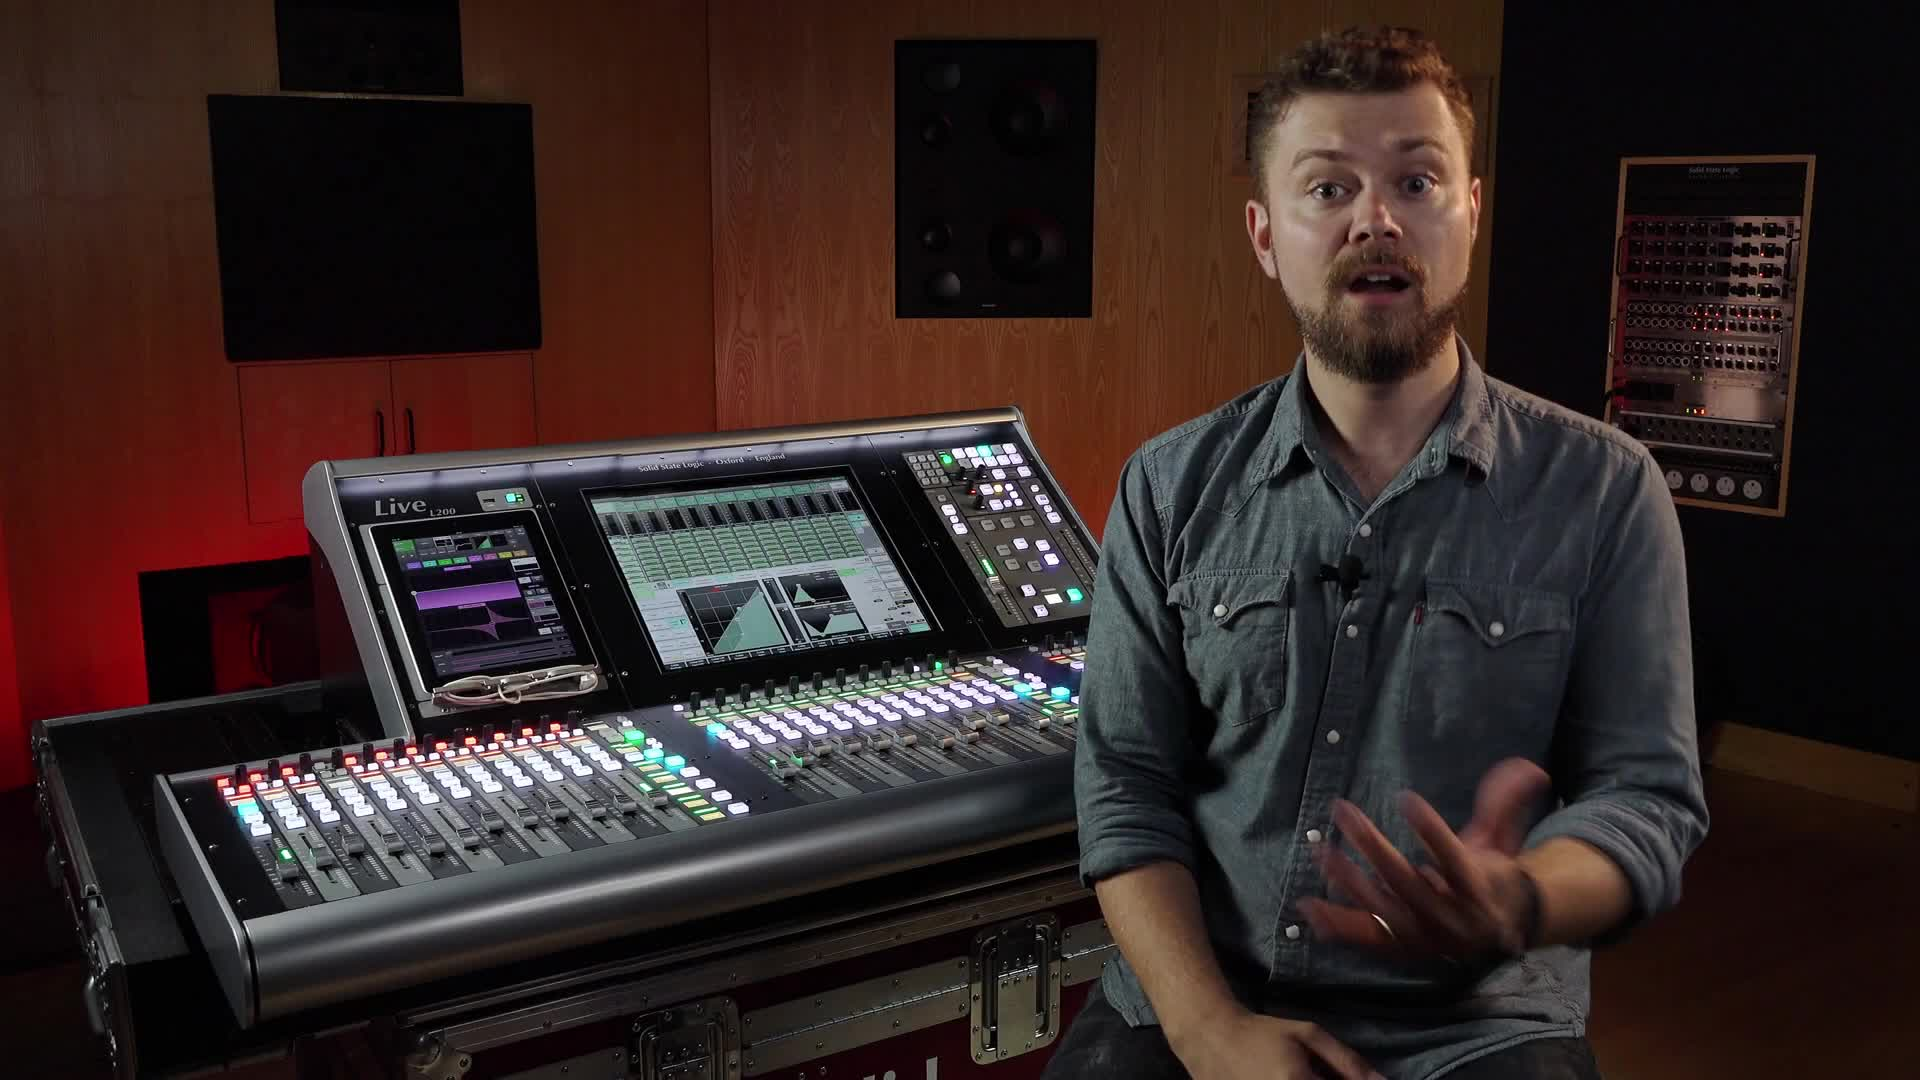 SSL live pt.6 - Stems